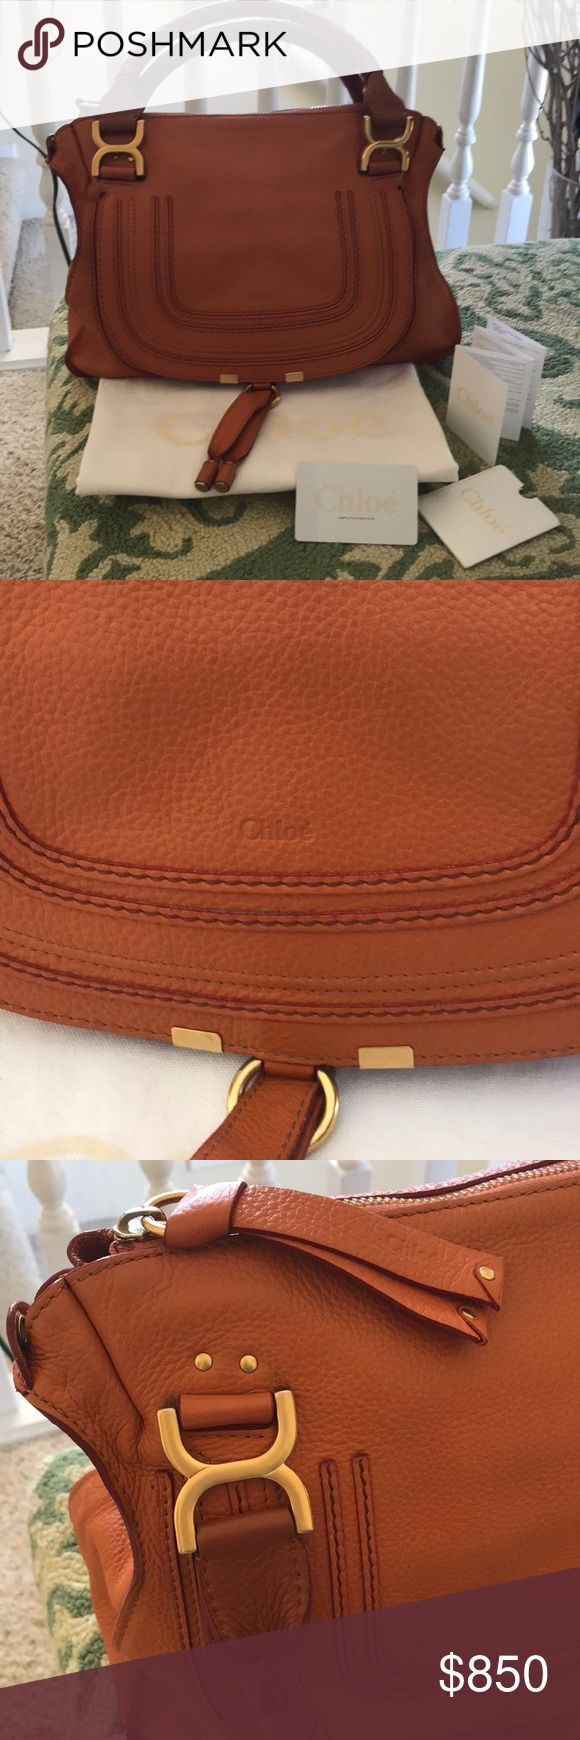 Chloe Marcie (medium) Authentic Chloe Marcie! Barely used in dark orange color. Soft leather that's a signature of Chloe. I lost a buckle of the strap that came with it. But you can take it to the Chloe boutique & maybe they can replace it.  It will come with dust bag & tags that came with it.  I DO NOT buy or/and wear fakes! Chloe Bags Shoulder Bags